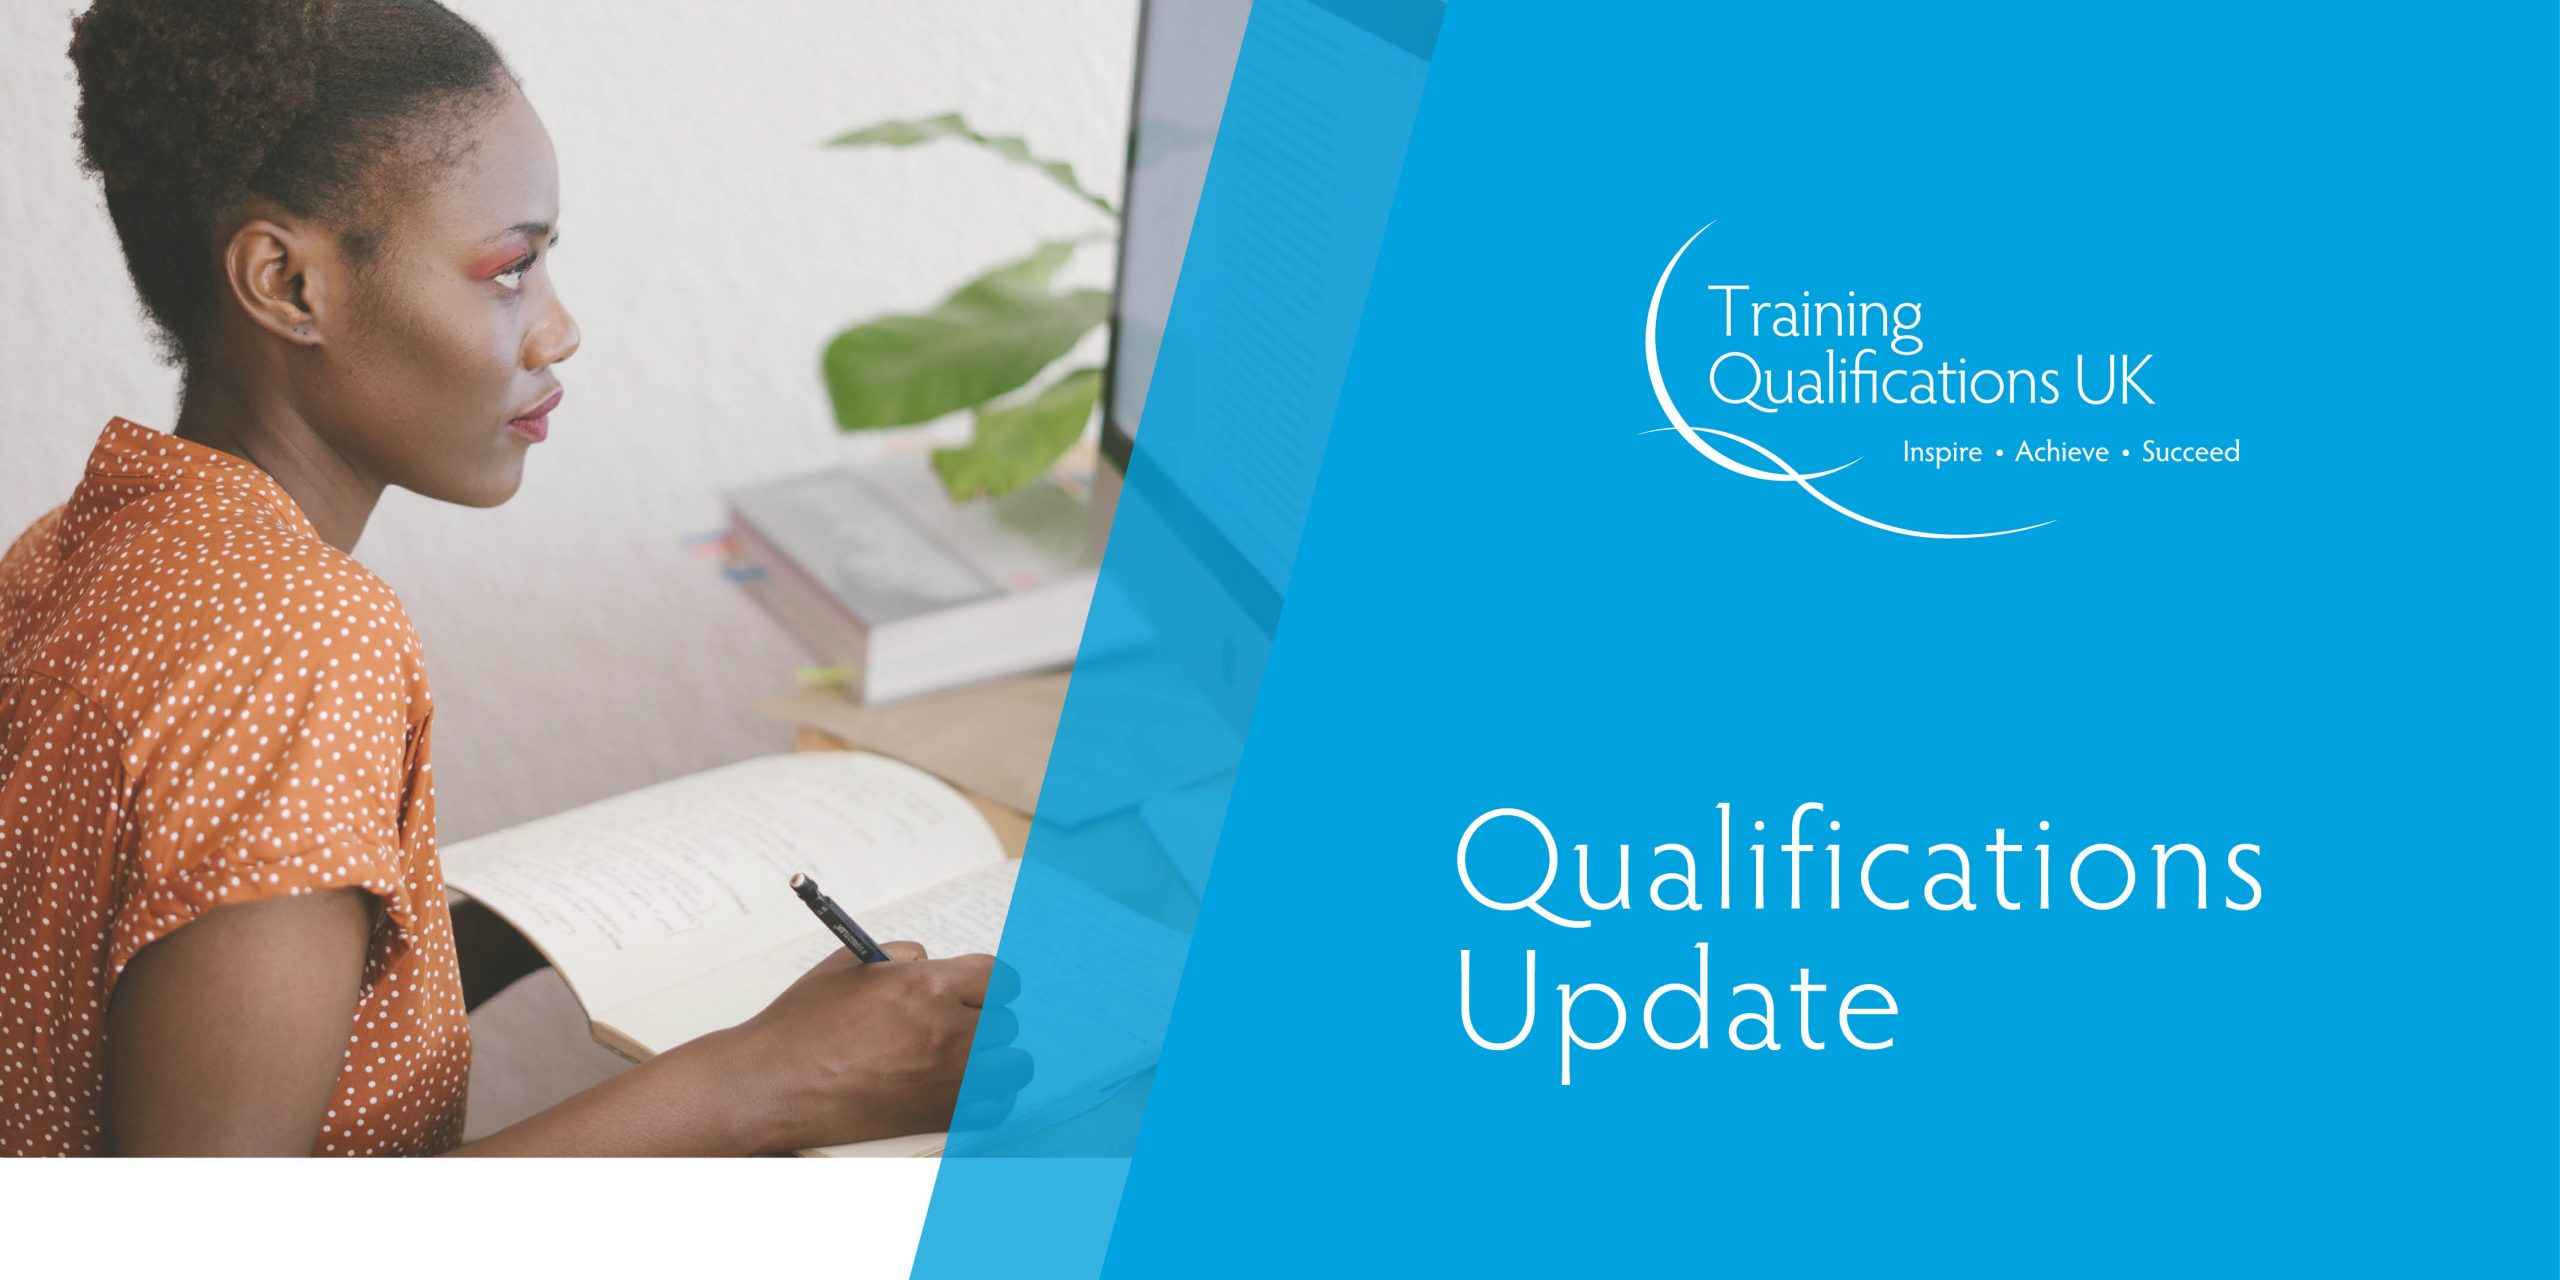 Qualifications Update for January 2020